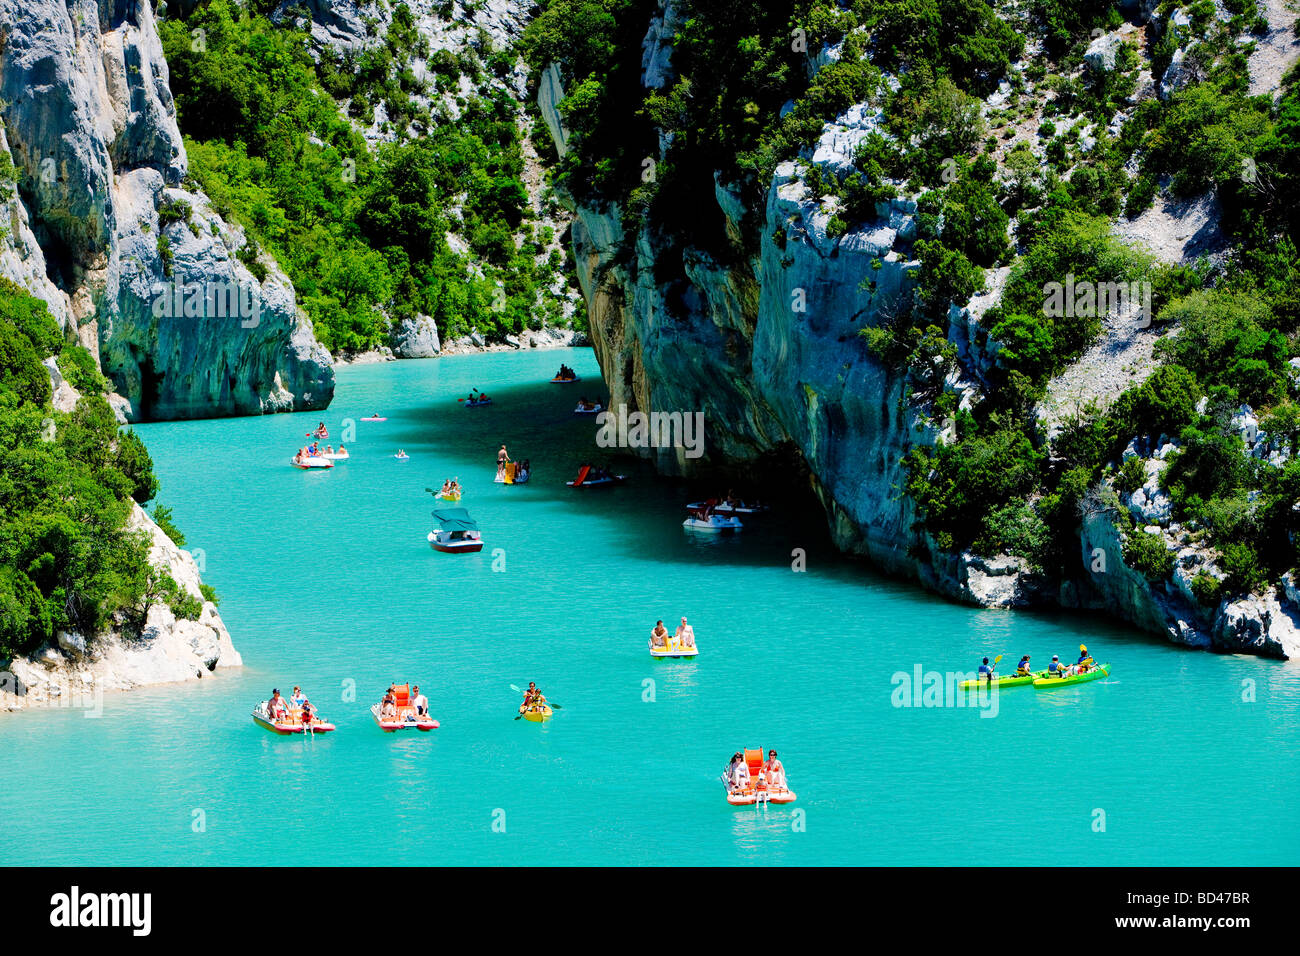 St croix lake les gorges du verdon provence france stock photo 25294523 alamy - Office du tourisme sainte croix du verdon ...